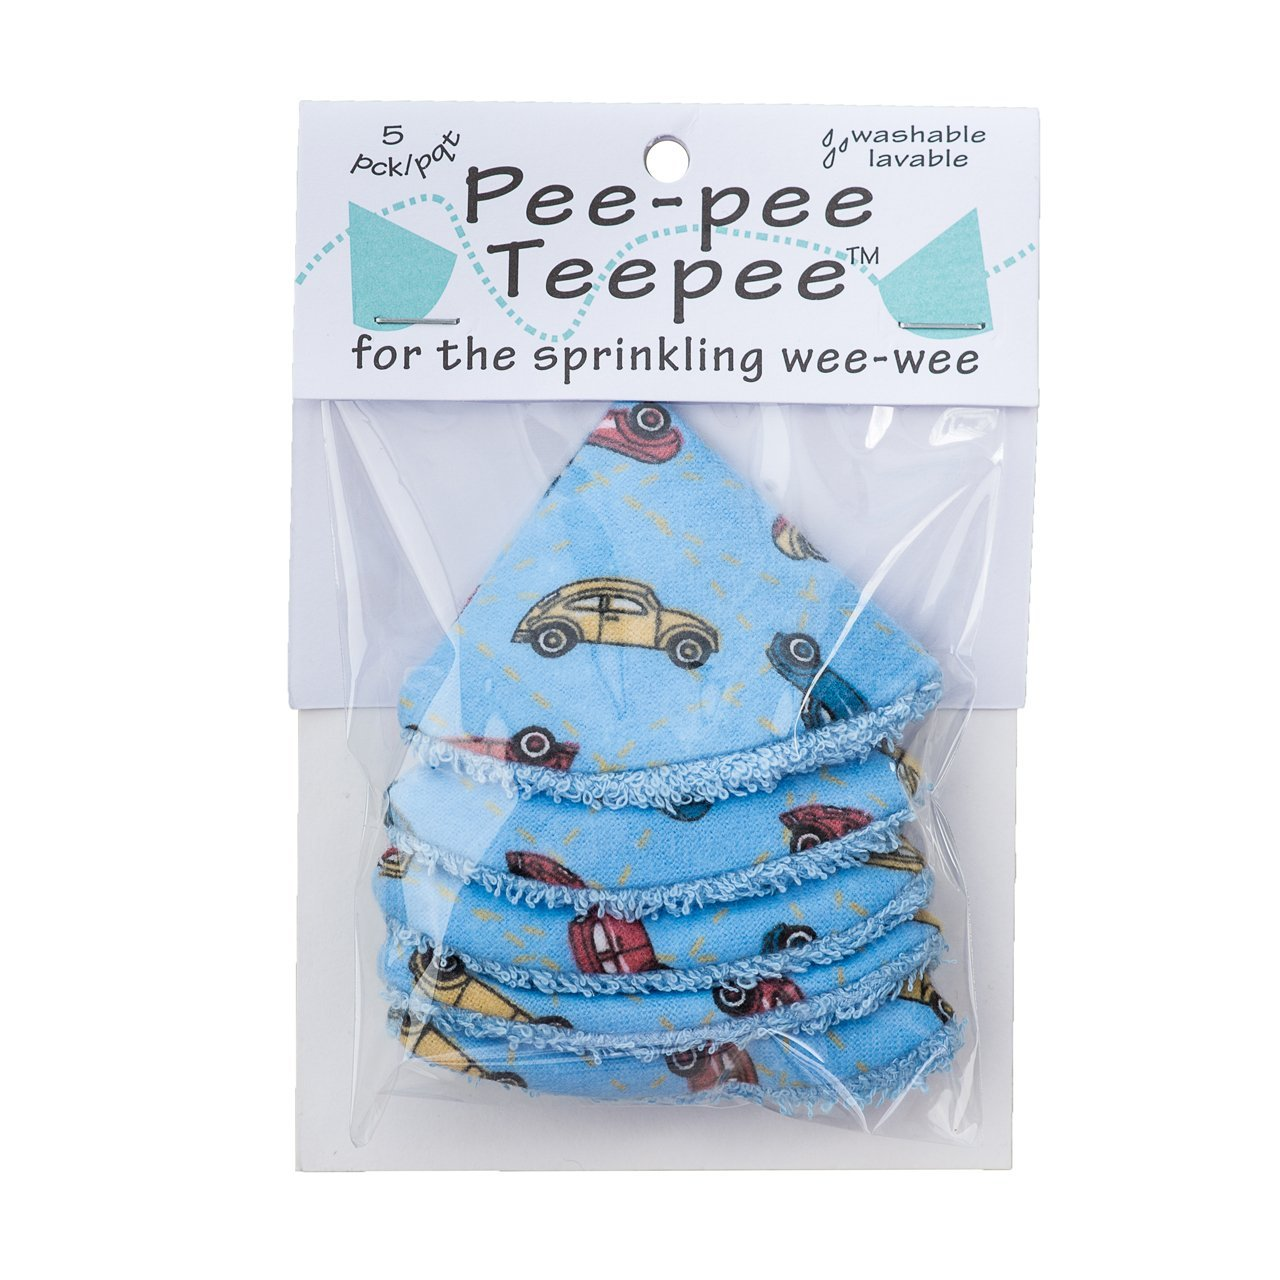 Beba Bean Pee-Pee Teepee Cellophane Bag - Baseball PT3030